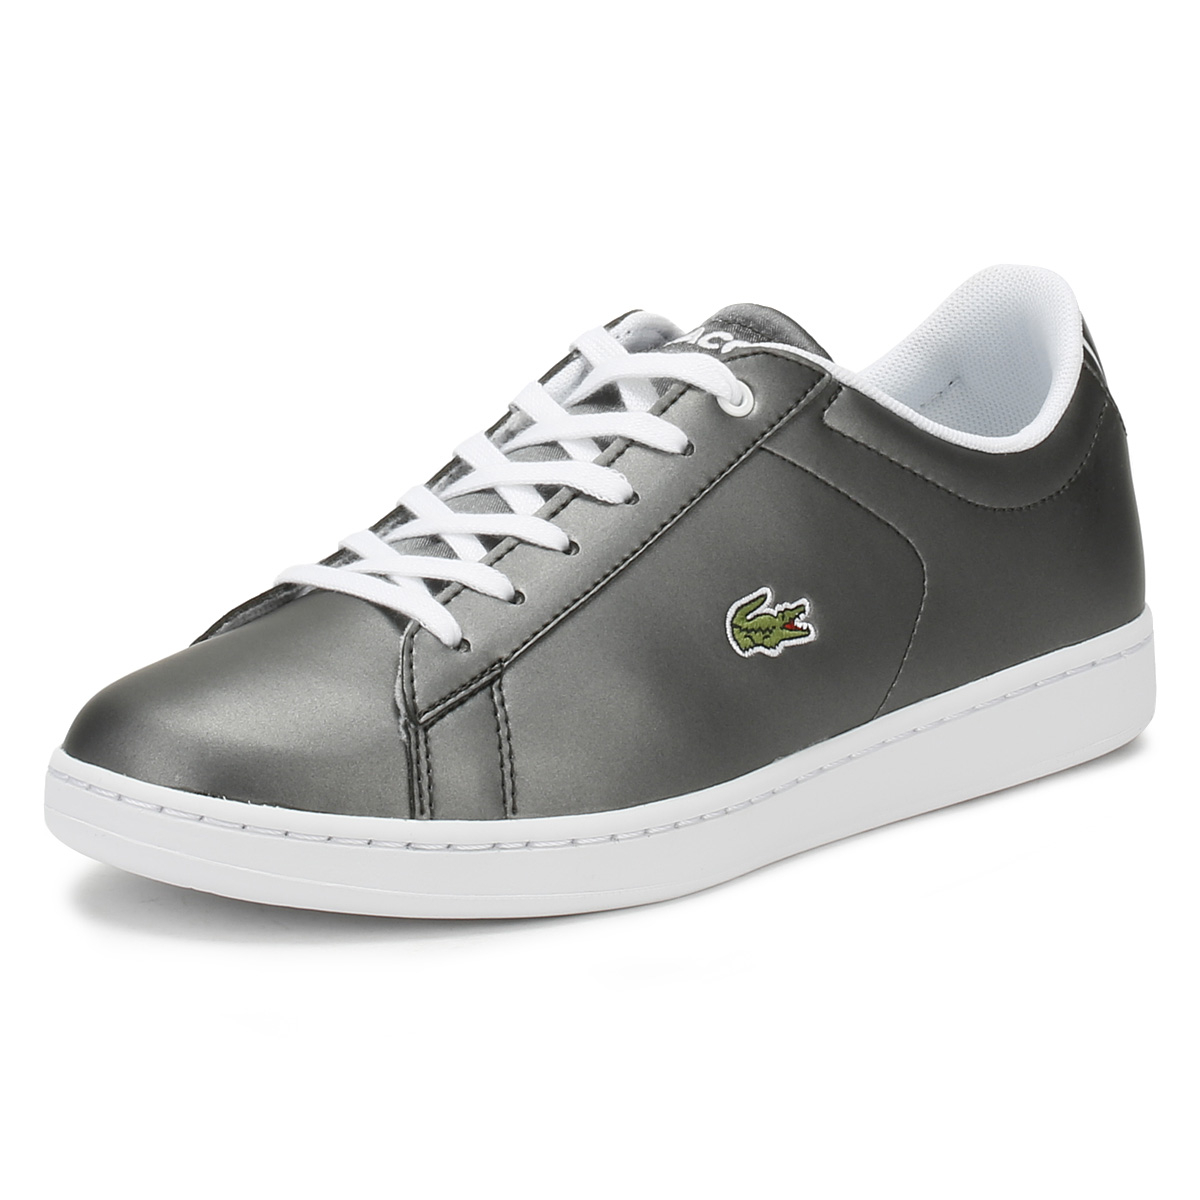 d9a0a61e Details about Lacoste Junior Trainers Gunmetal Grey & White Carnaby EVO 218  Kids Casual Shoes